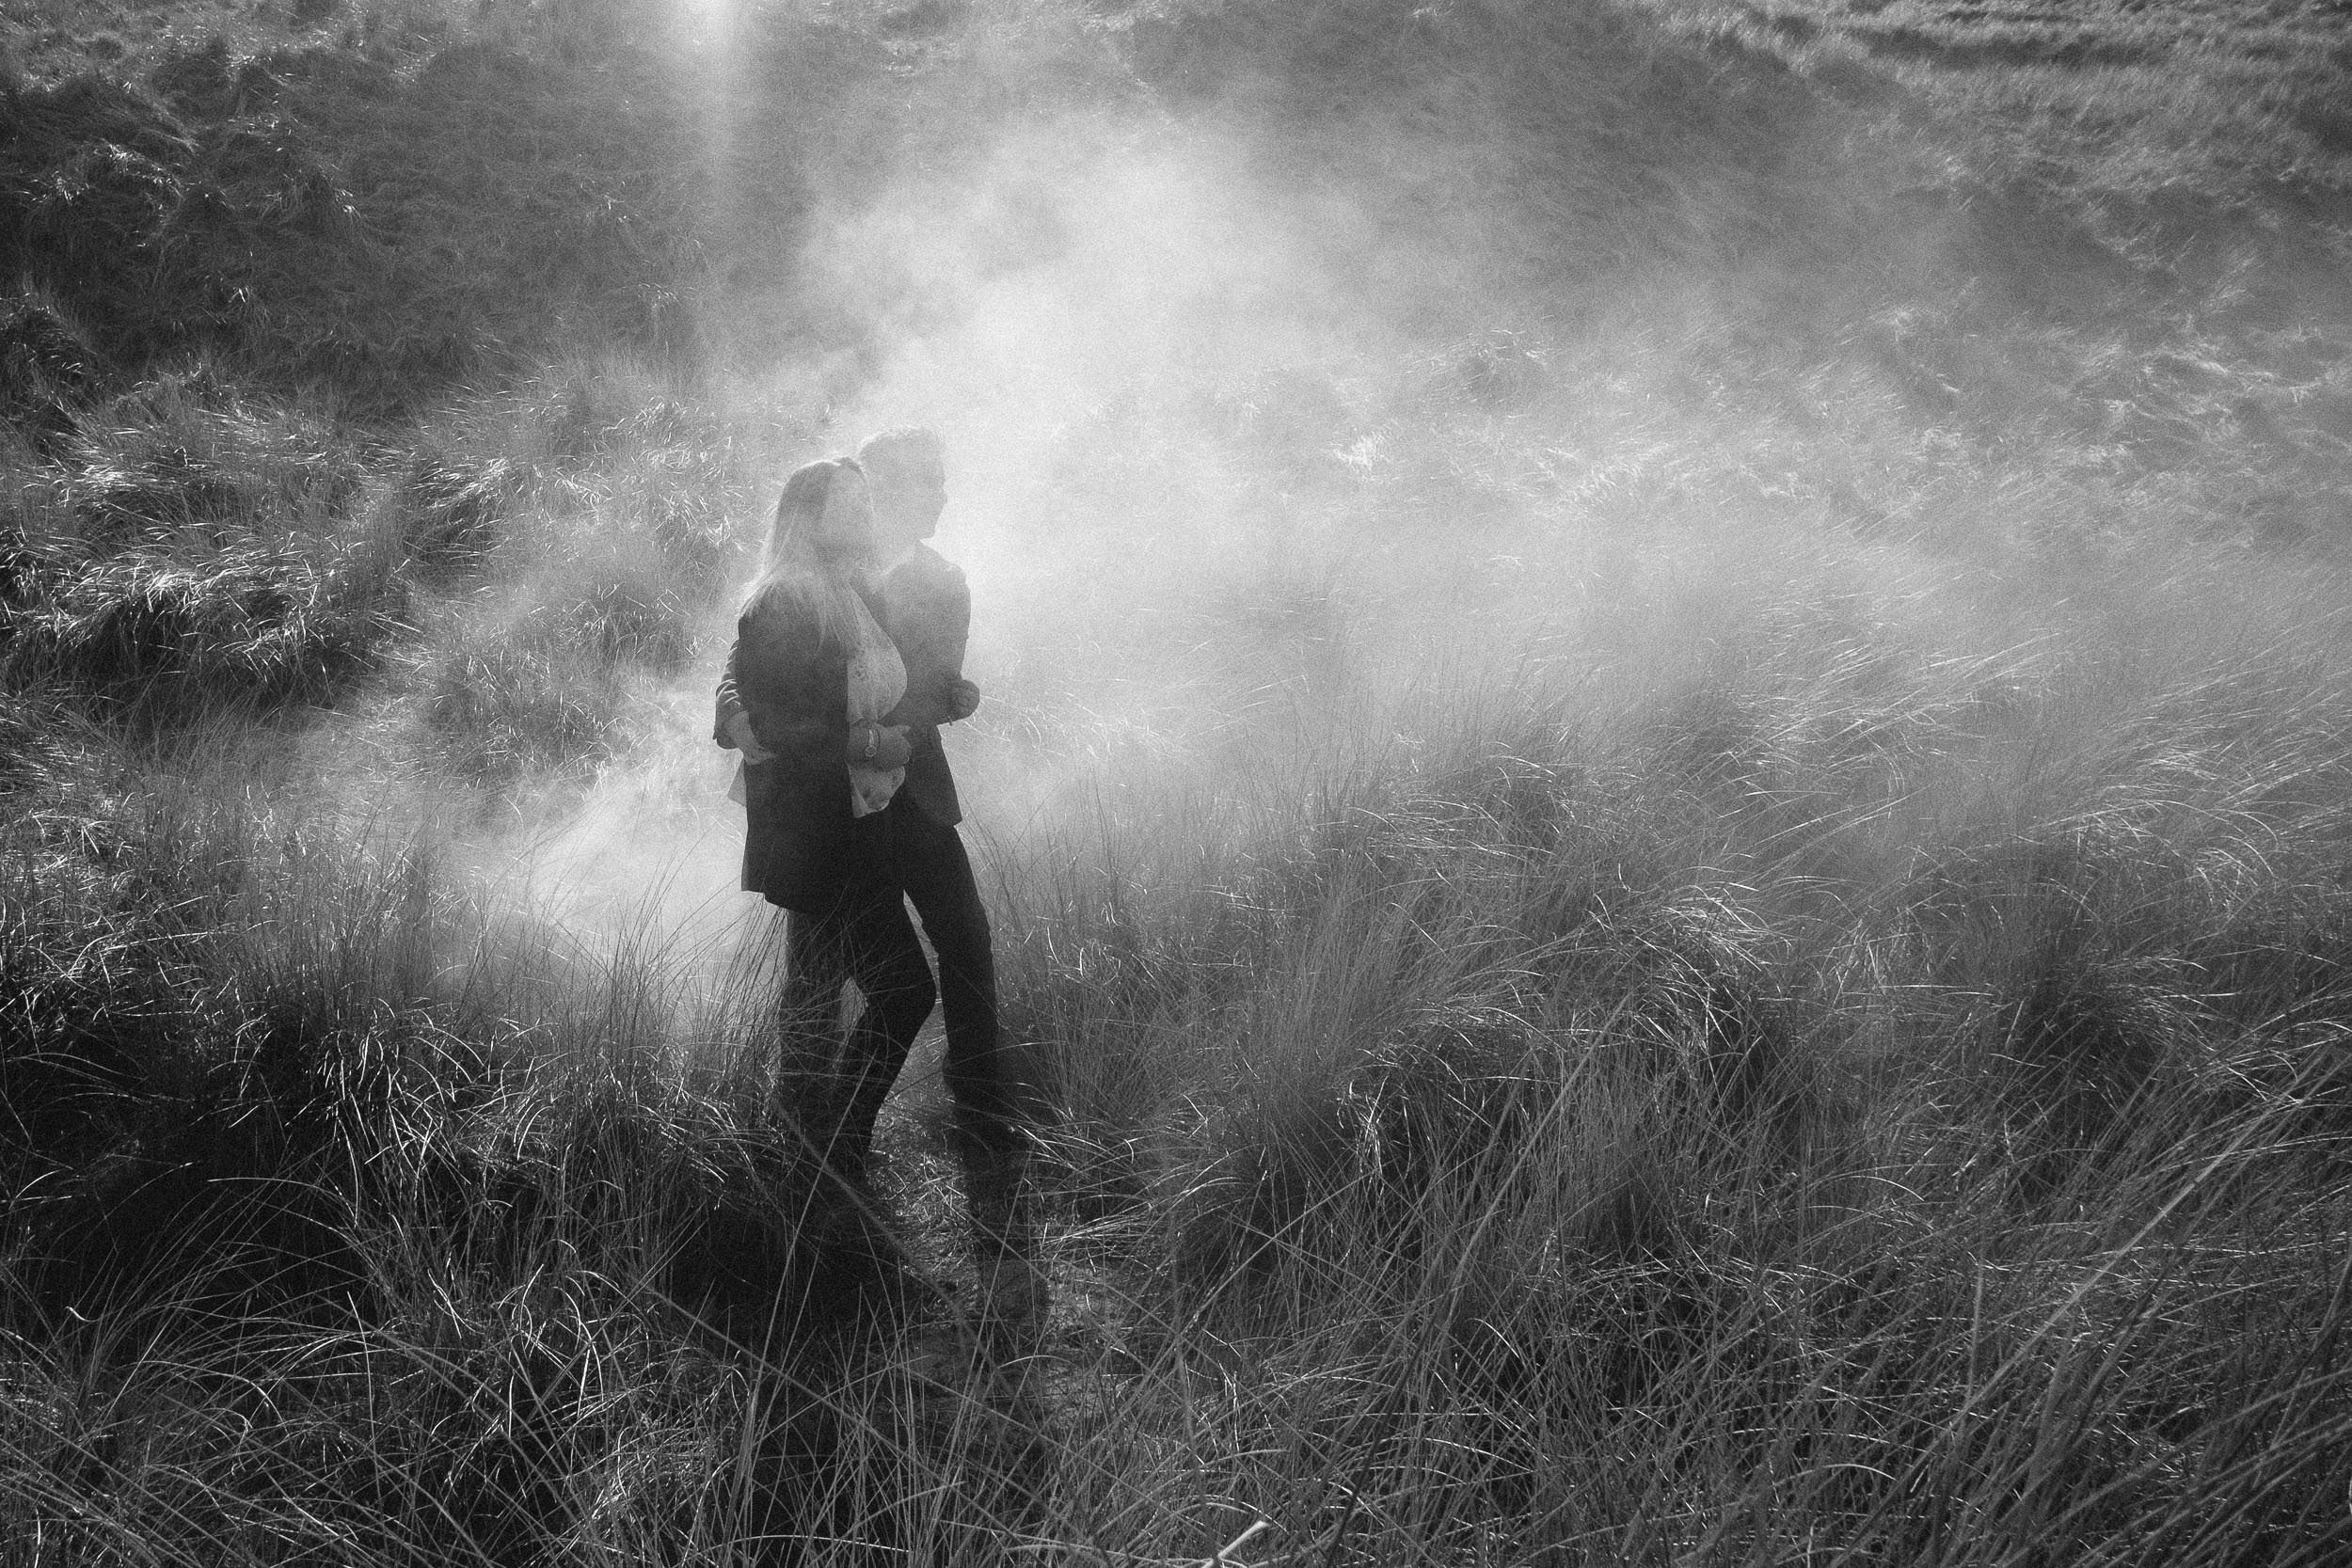 A black and white photo of an engaged couple cuddling while surrounded by smoke and long grass